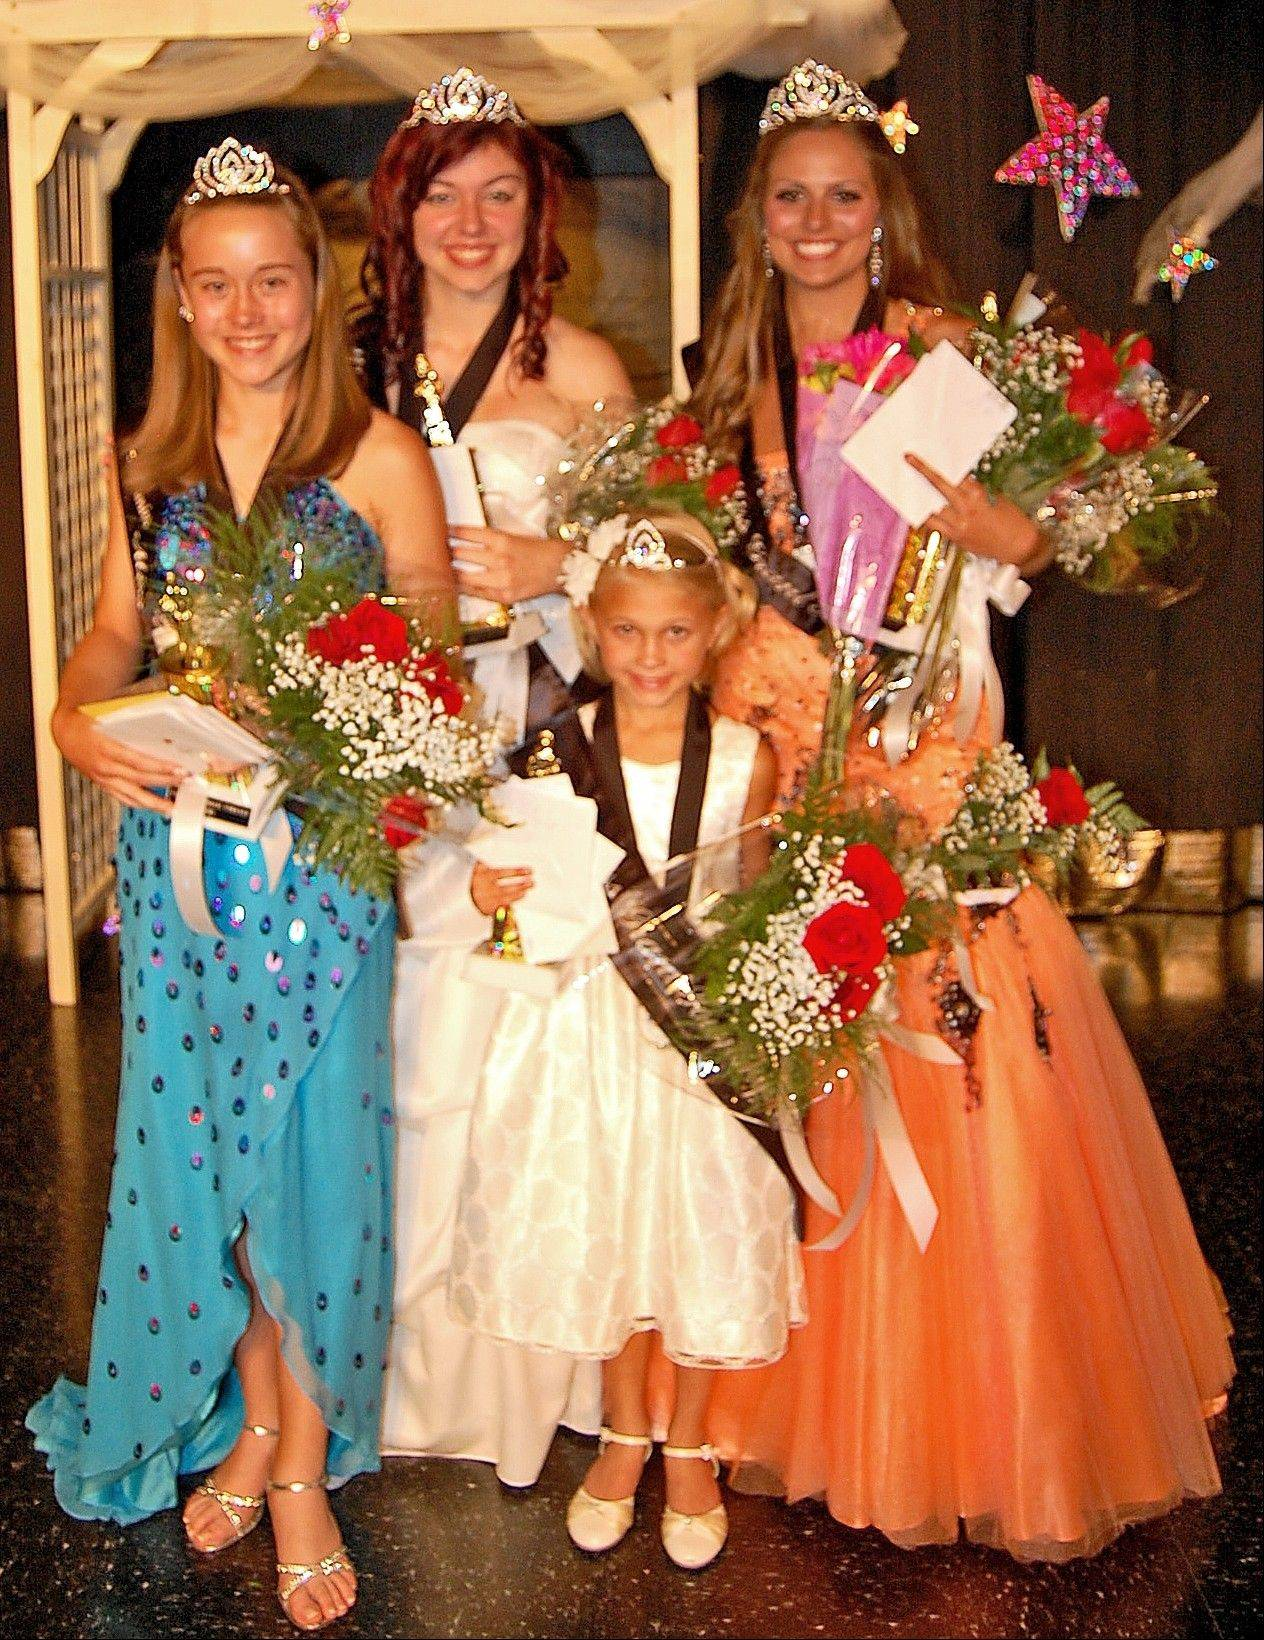 The 2012 Grant Township queens: Little Miss Grant Township Jennie Woodruff, Junior Miss Grant Township Gabriela Schoenberg, Teen Miss Grant Township Jessie Burdett and Miss Grant Township Bethani Jacobsen.